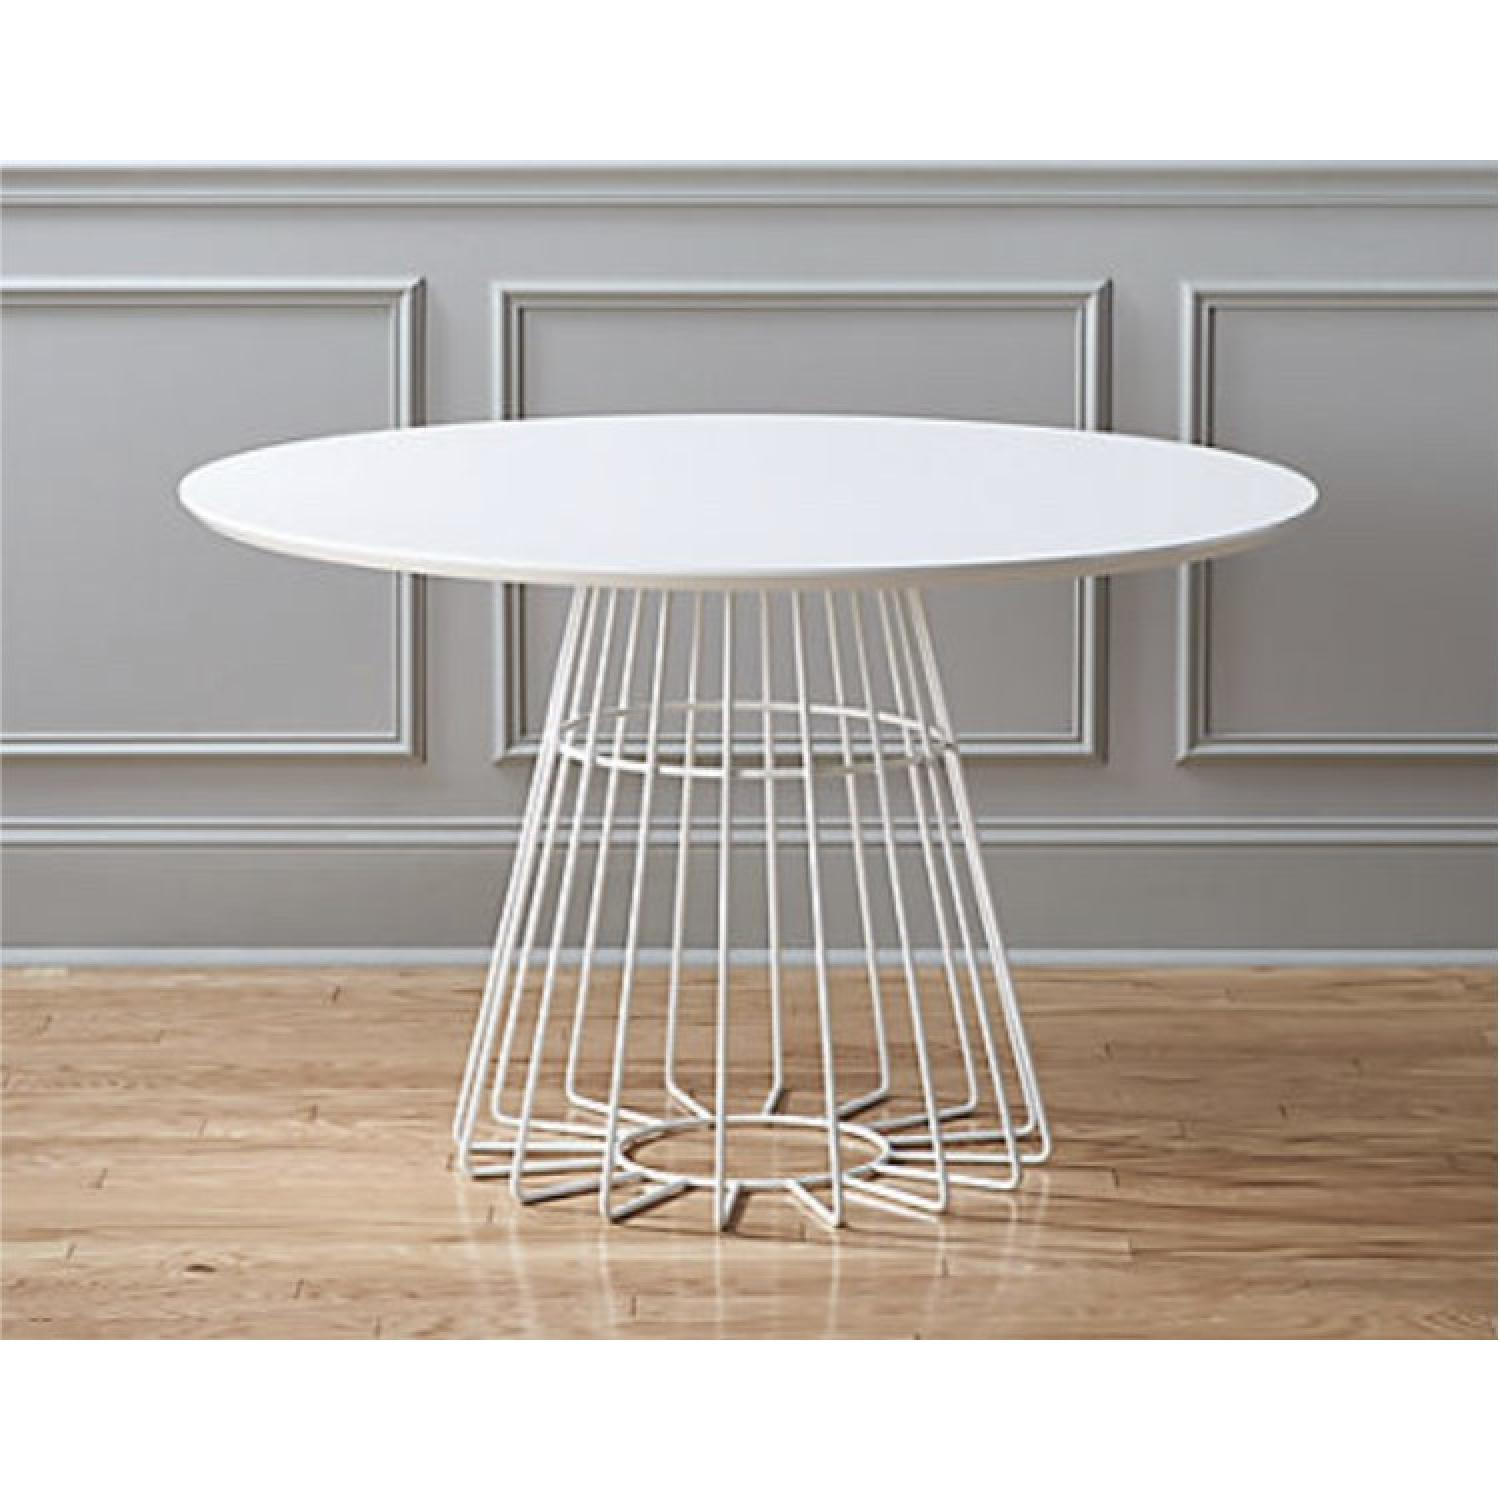 CB2 Compass Dining Table - image-1